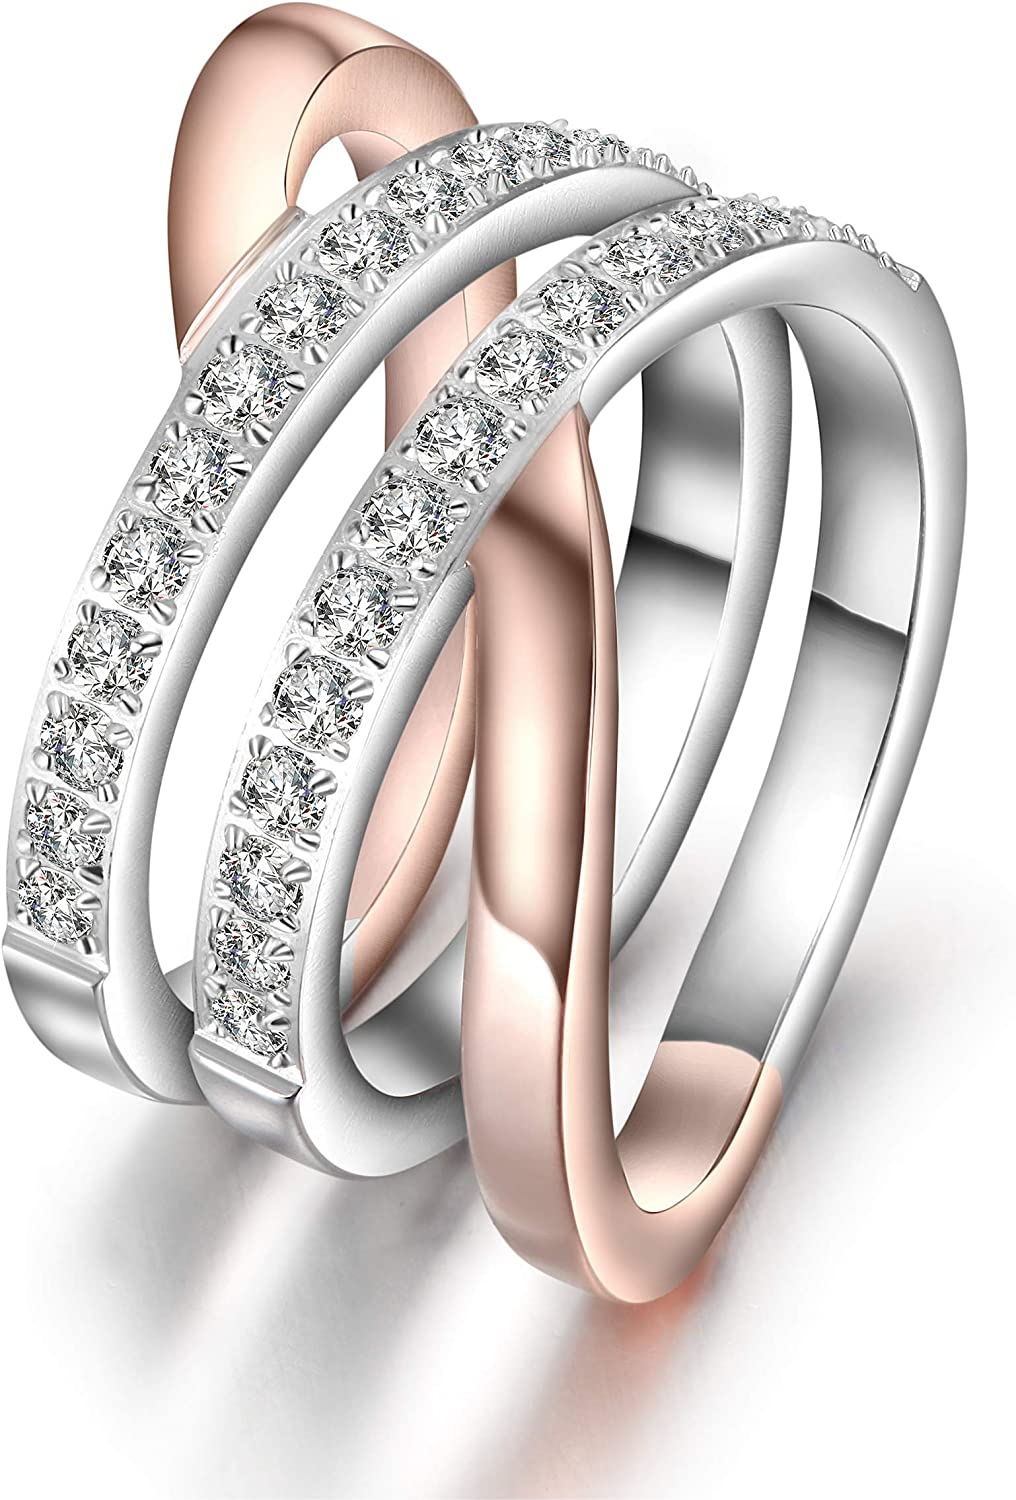 JINBAOYING Gold Rings for Women Girl Statement Fashion Rings Gold Plated Stainless Steel Engagement Promise Knot Love Rings